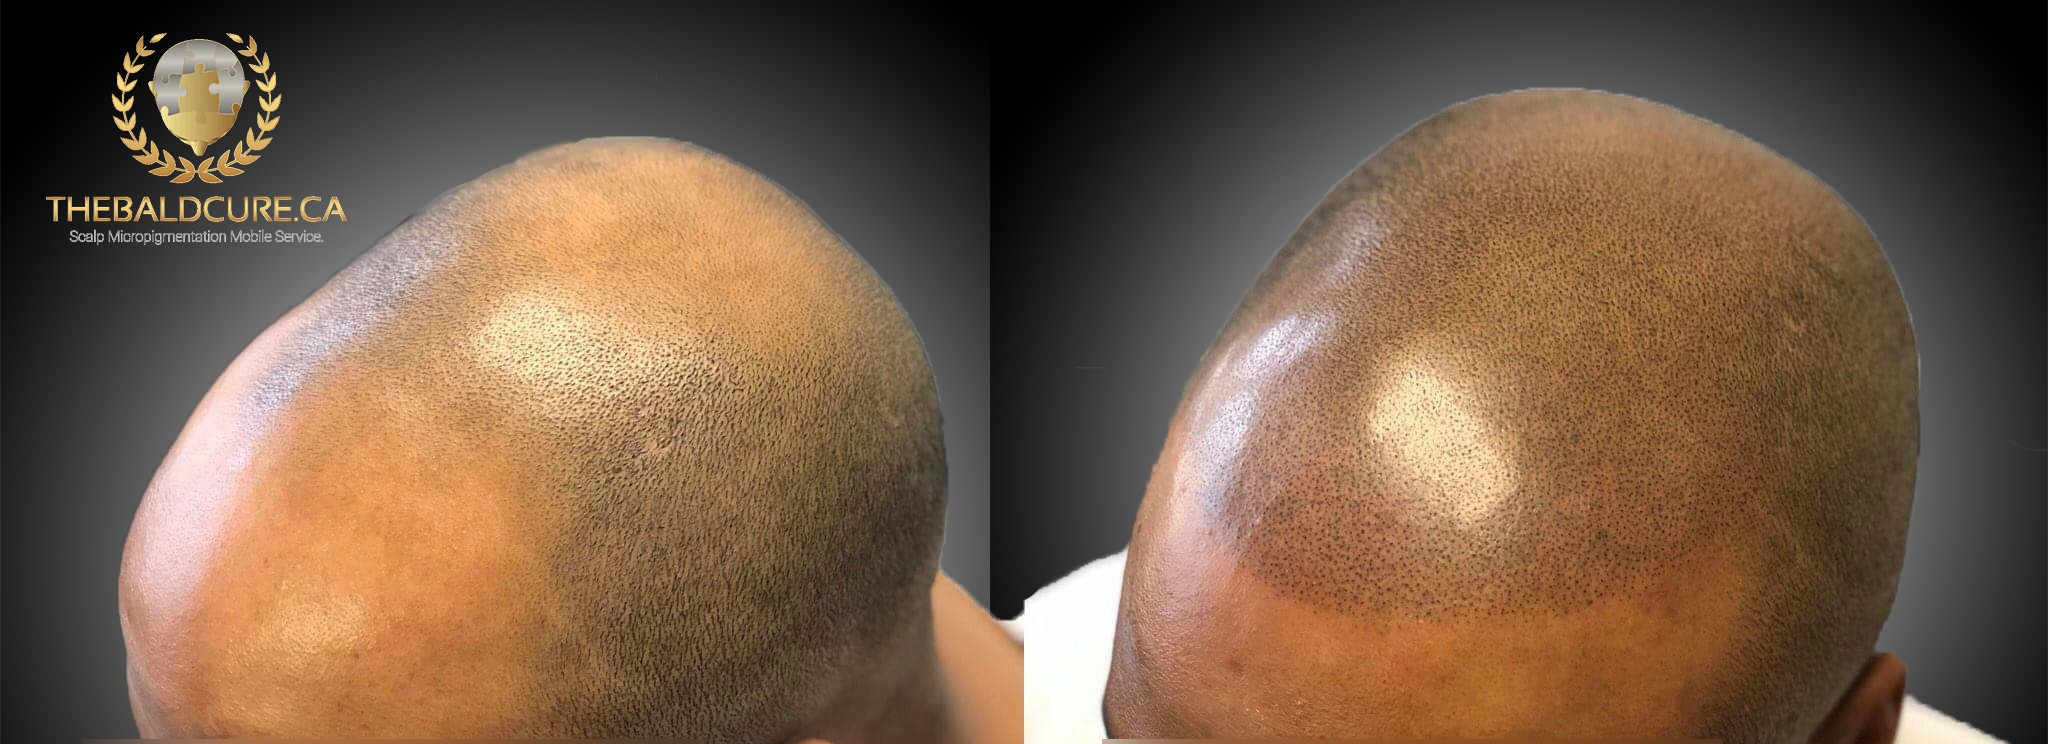 The Bald Cure Mobile Service In The Comfort Of Your Home We Beat Any Price 1 Pictures. Explore Our Photo Gallery